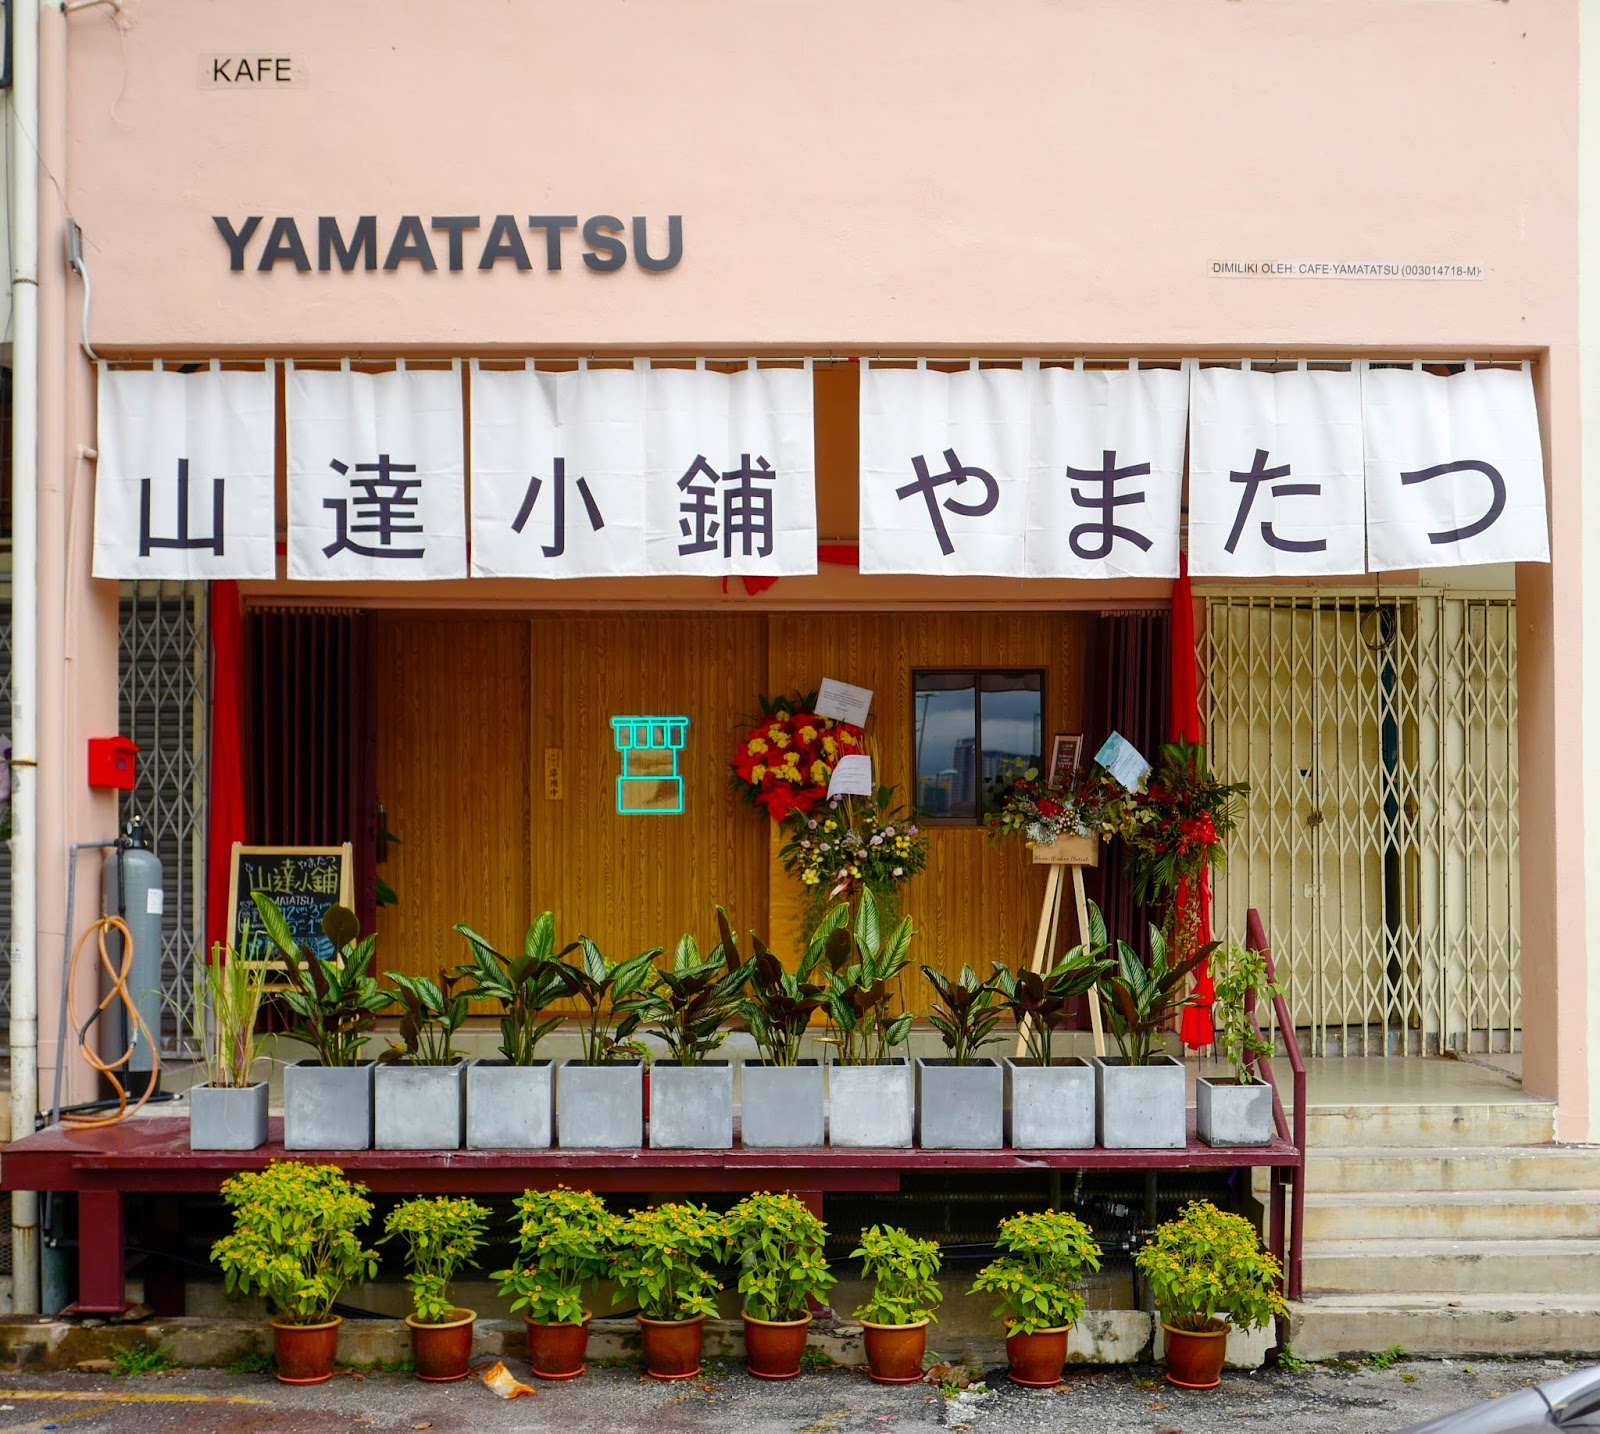 Cafe Yamatatsu, Old Klang Road